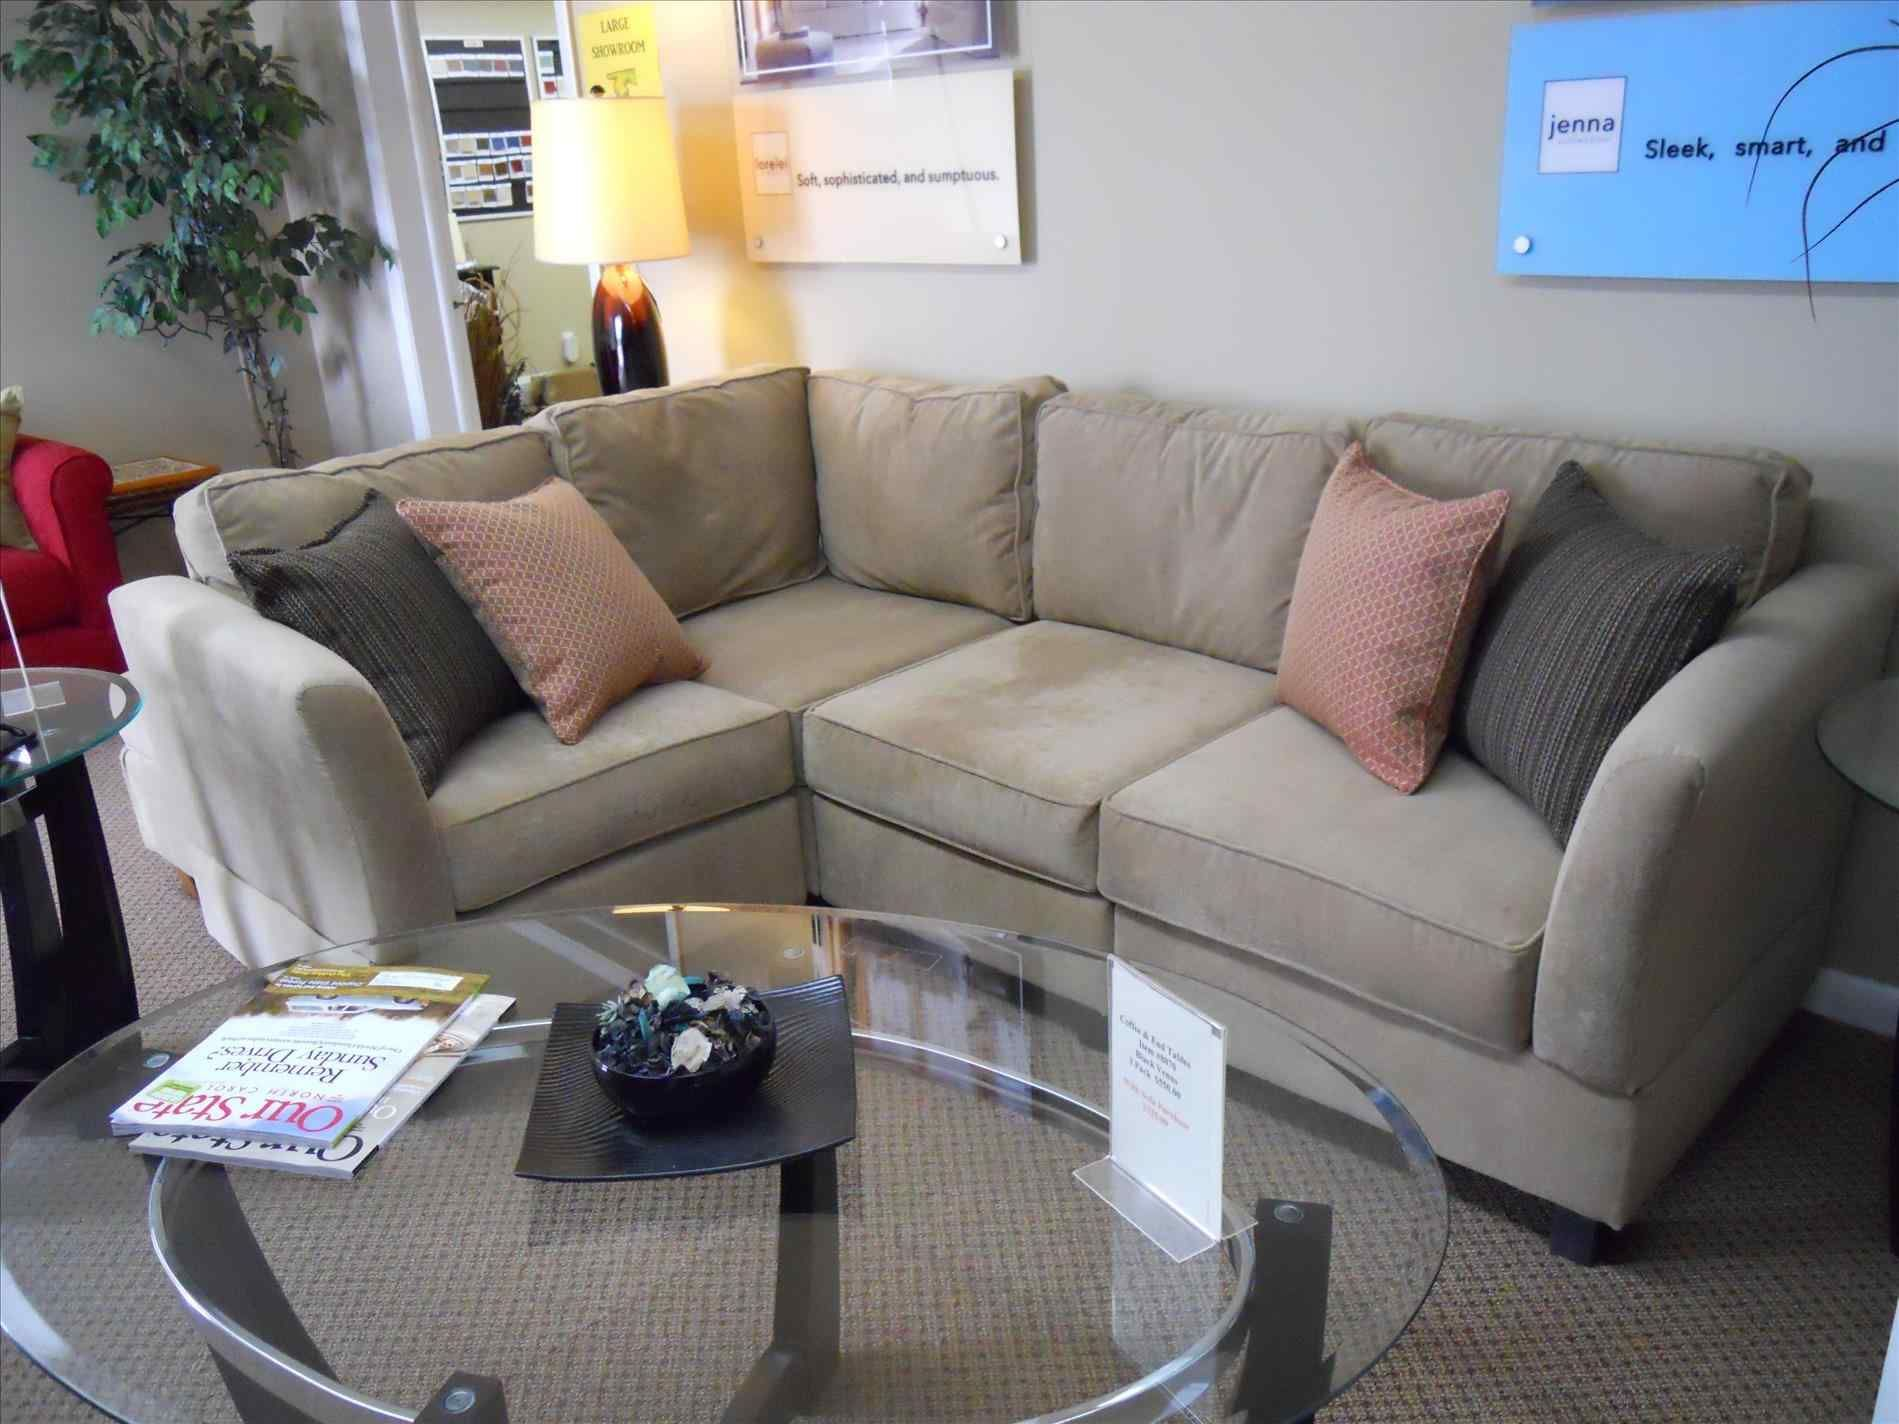 Living Room Cool Sets For Sale Living Modern Sectional Sofas Under 1000 Room Cool Couches For Small Spaces Sectional Sofa With Chaise Apartment Sectional Sofa